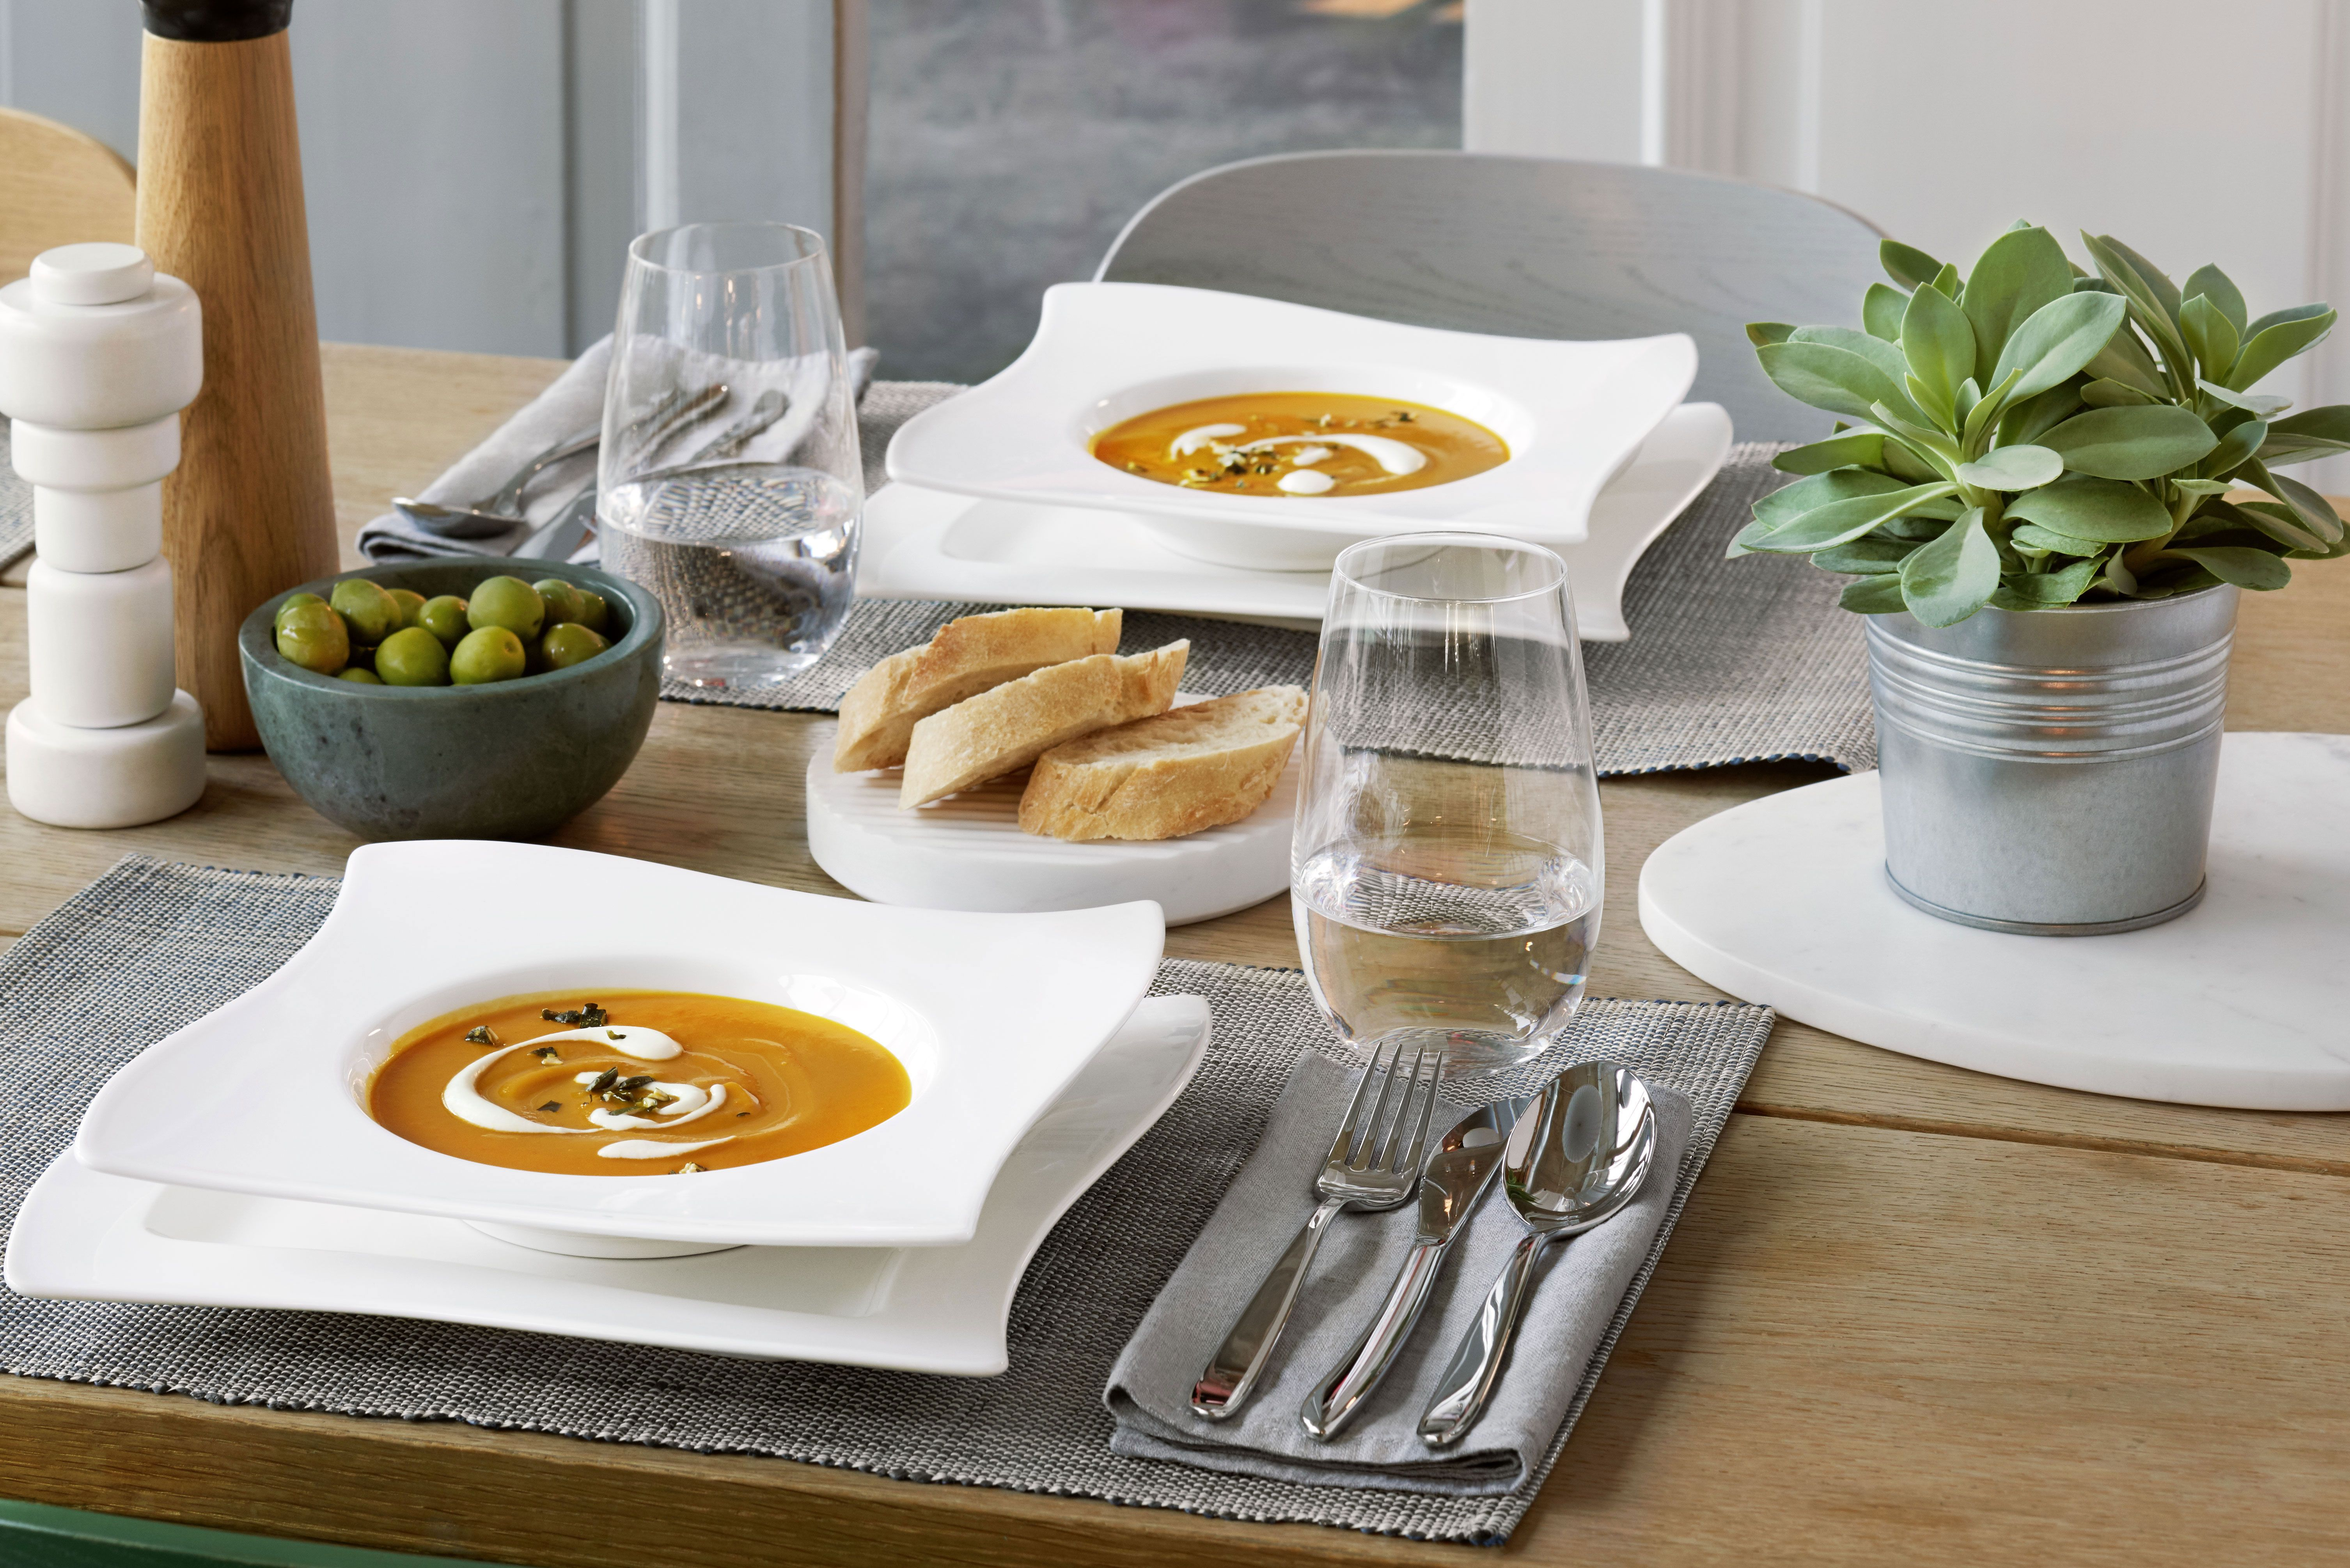 Newwave By Villeroy Boch Discover Our Design Classic Collection Dinnerware Home Decor Ideas Tabelware Design Dinnerware Tableware Design Villeroy Boch